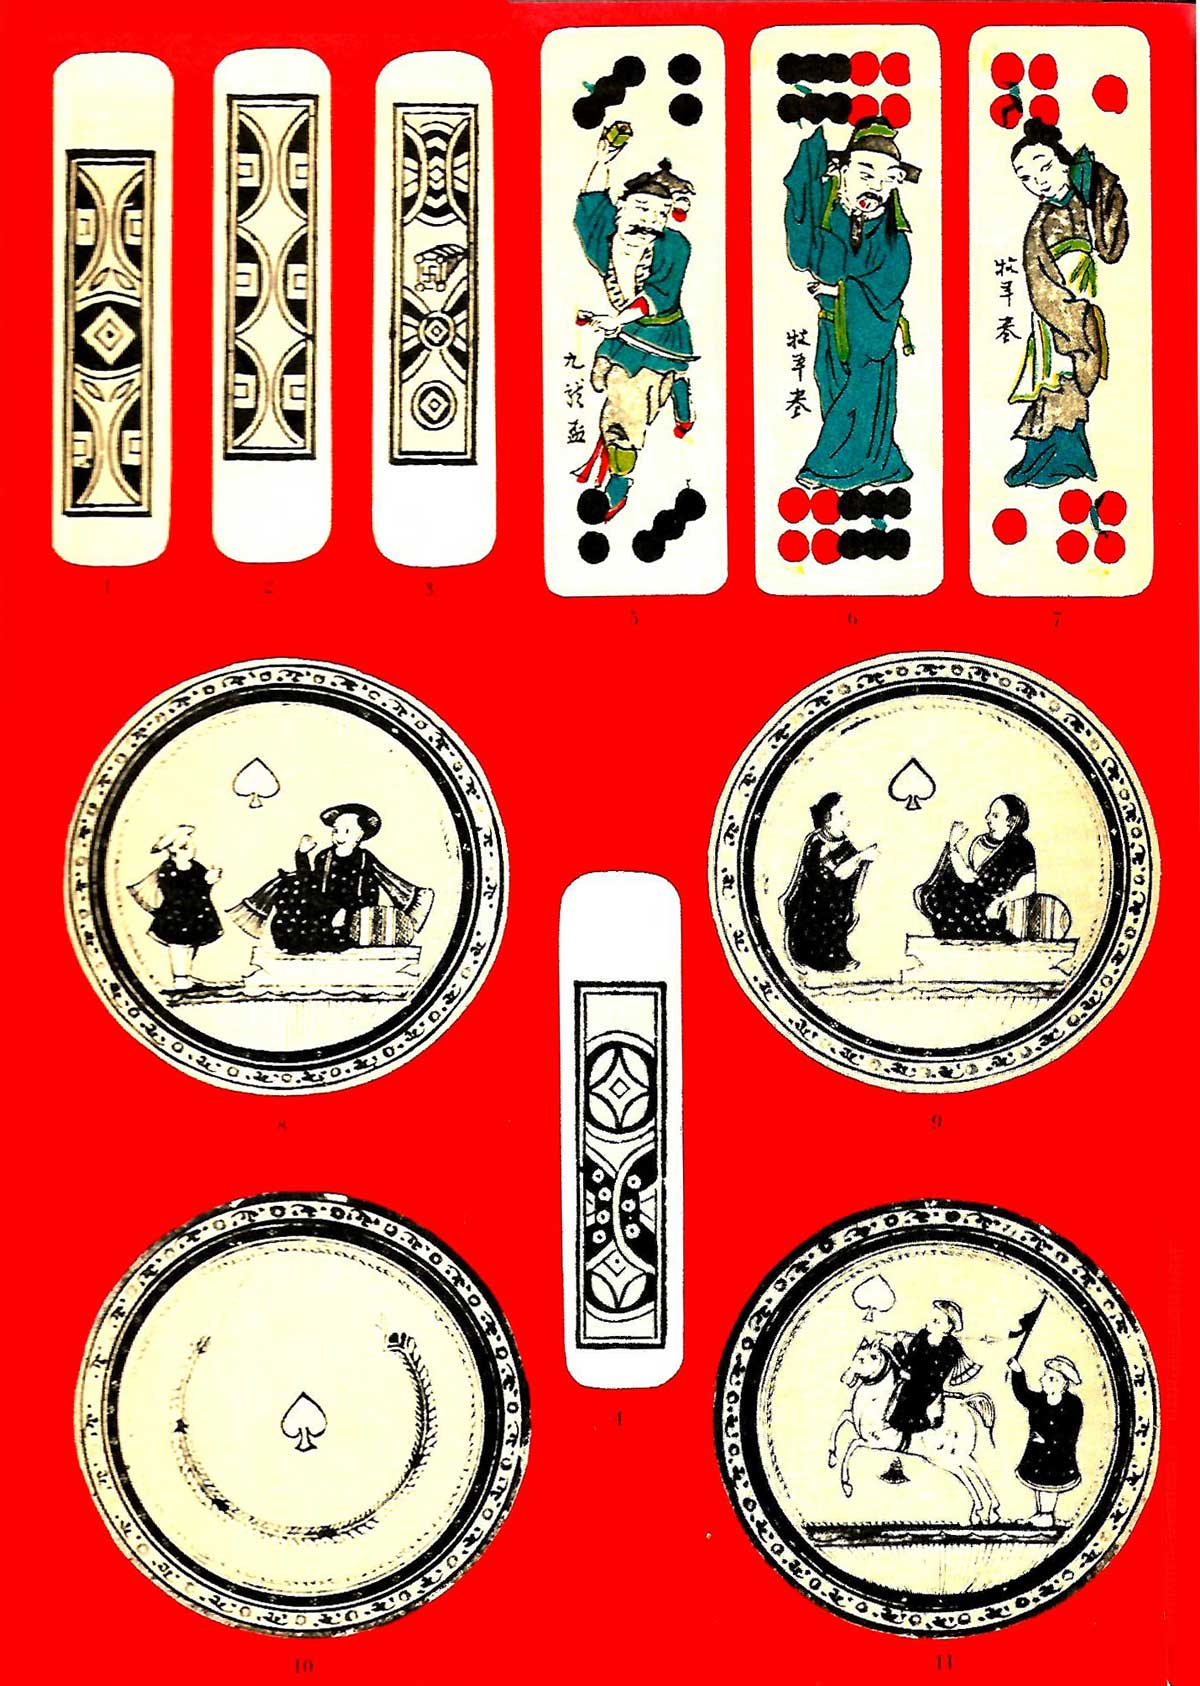 endpaper #1 from Fireside Book of Playing Cards edited by Oswald Jacoby and Albert Morehead and published by Simon & Schuster in 1957